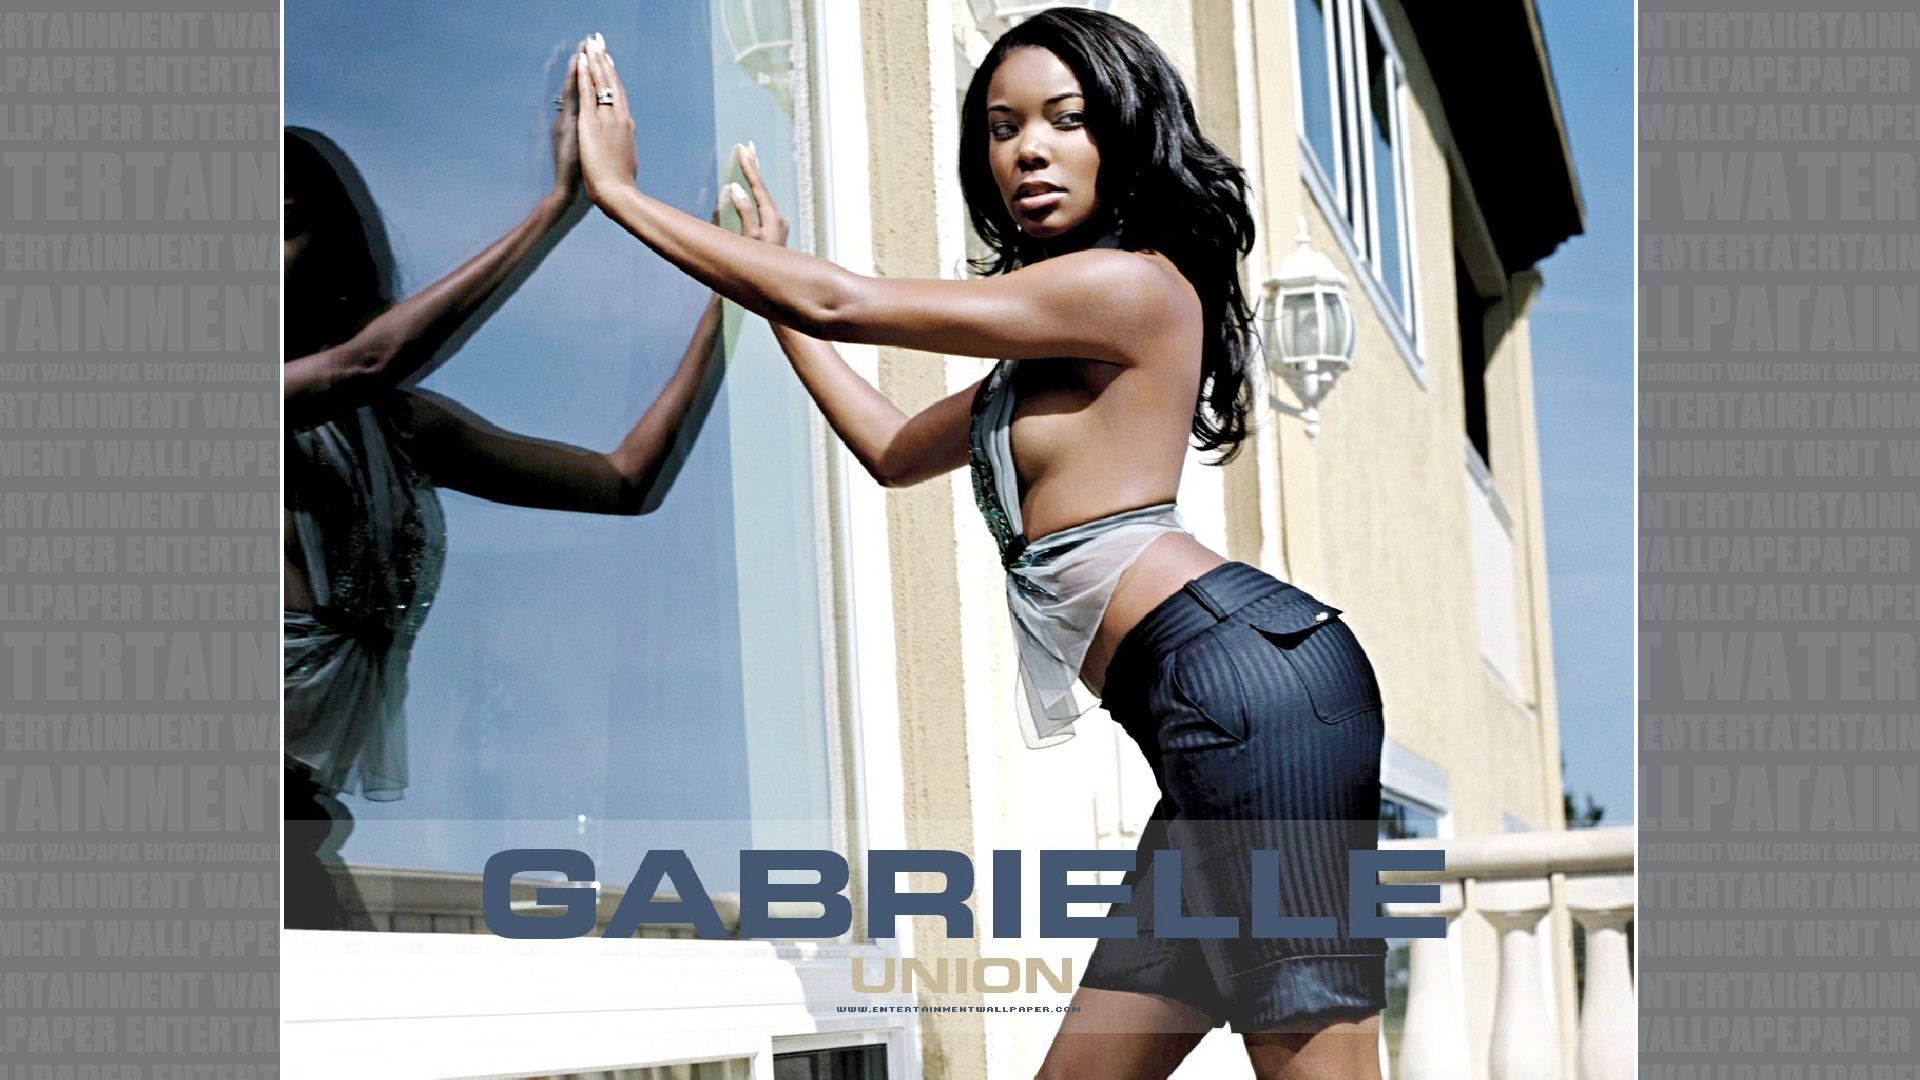 1920x1080 - Gabrielle Union Wallpapers 19